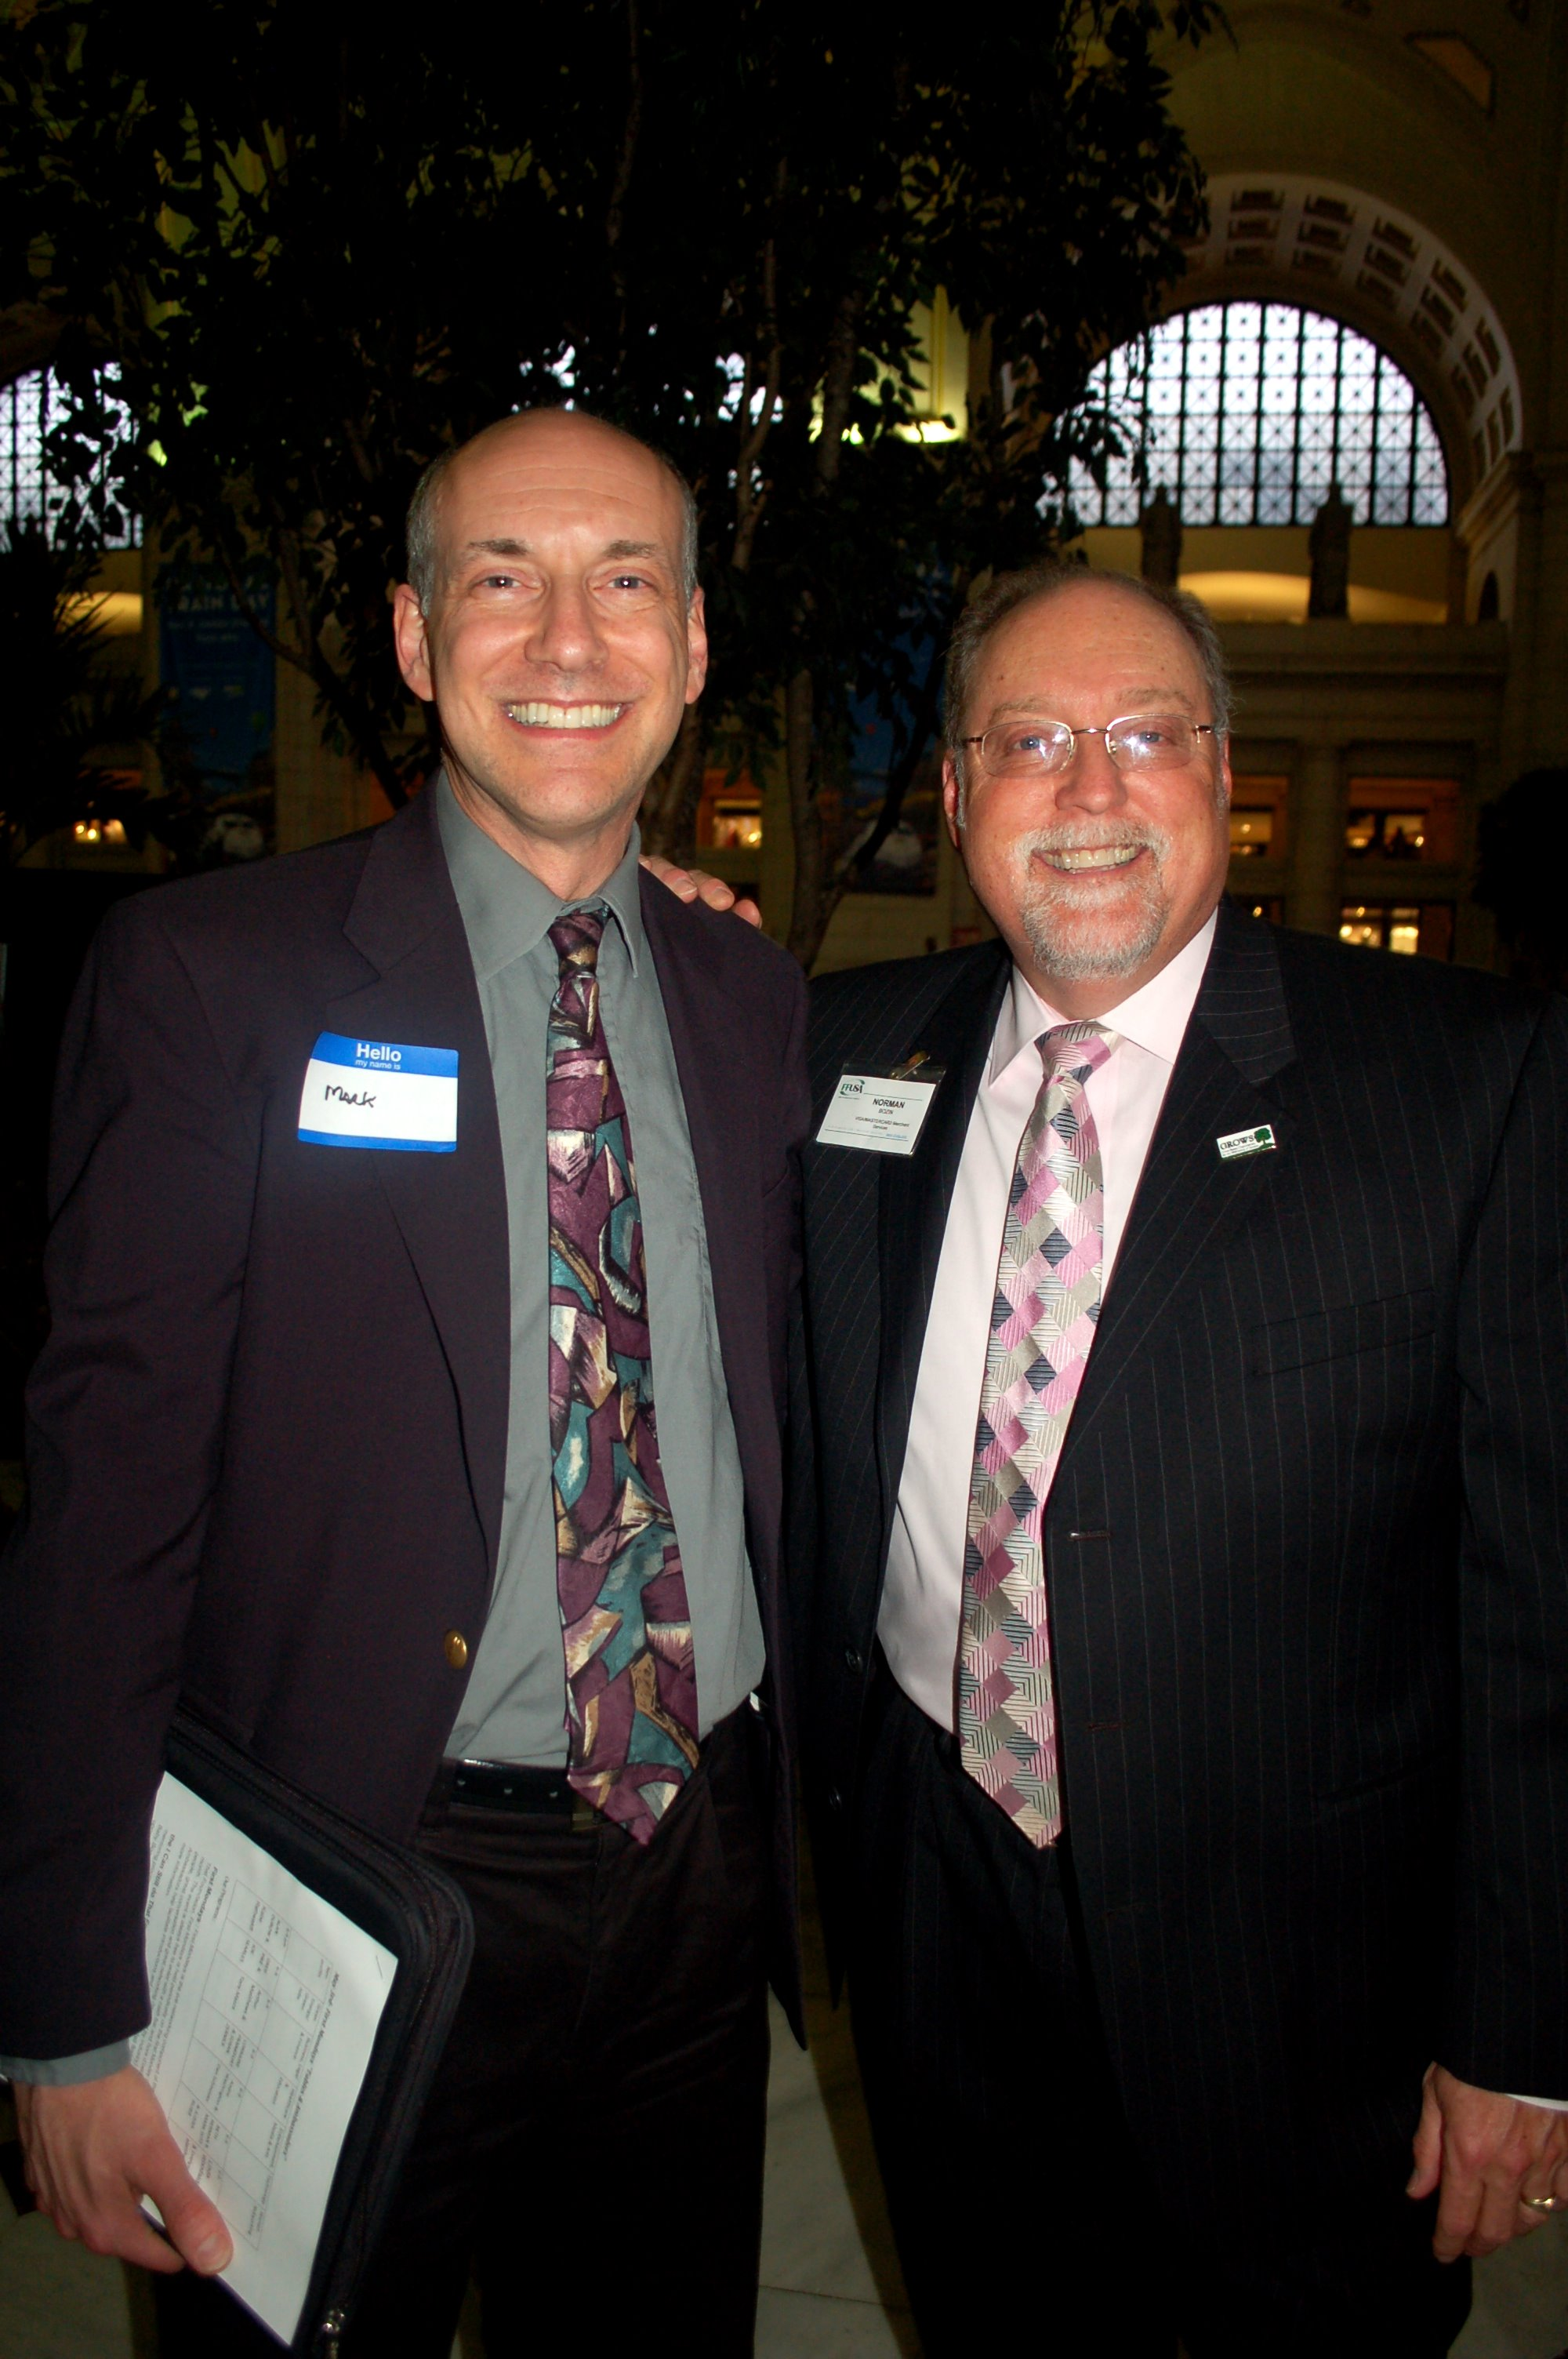 05-2010-smiling-business-guys-in-dc.jpg